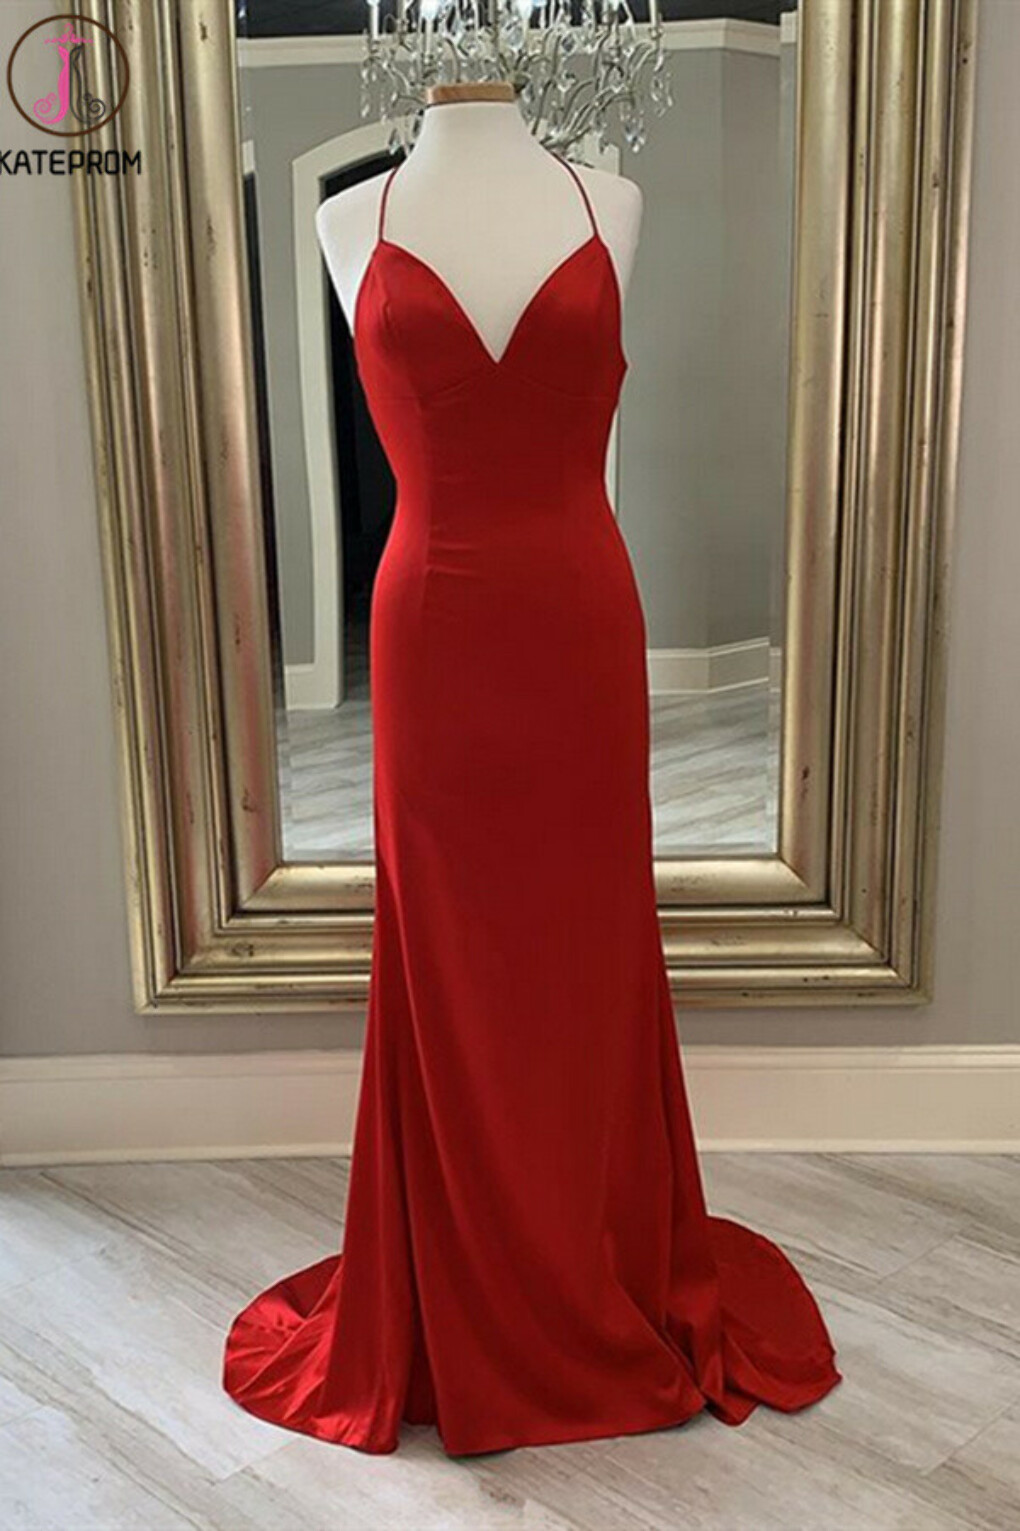 Kateprom Red New Junior Prom Dress, Long Homecoming Dress for sale KPH0536